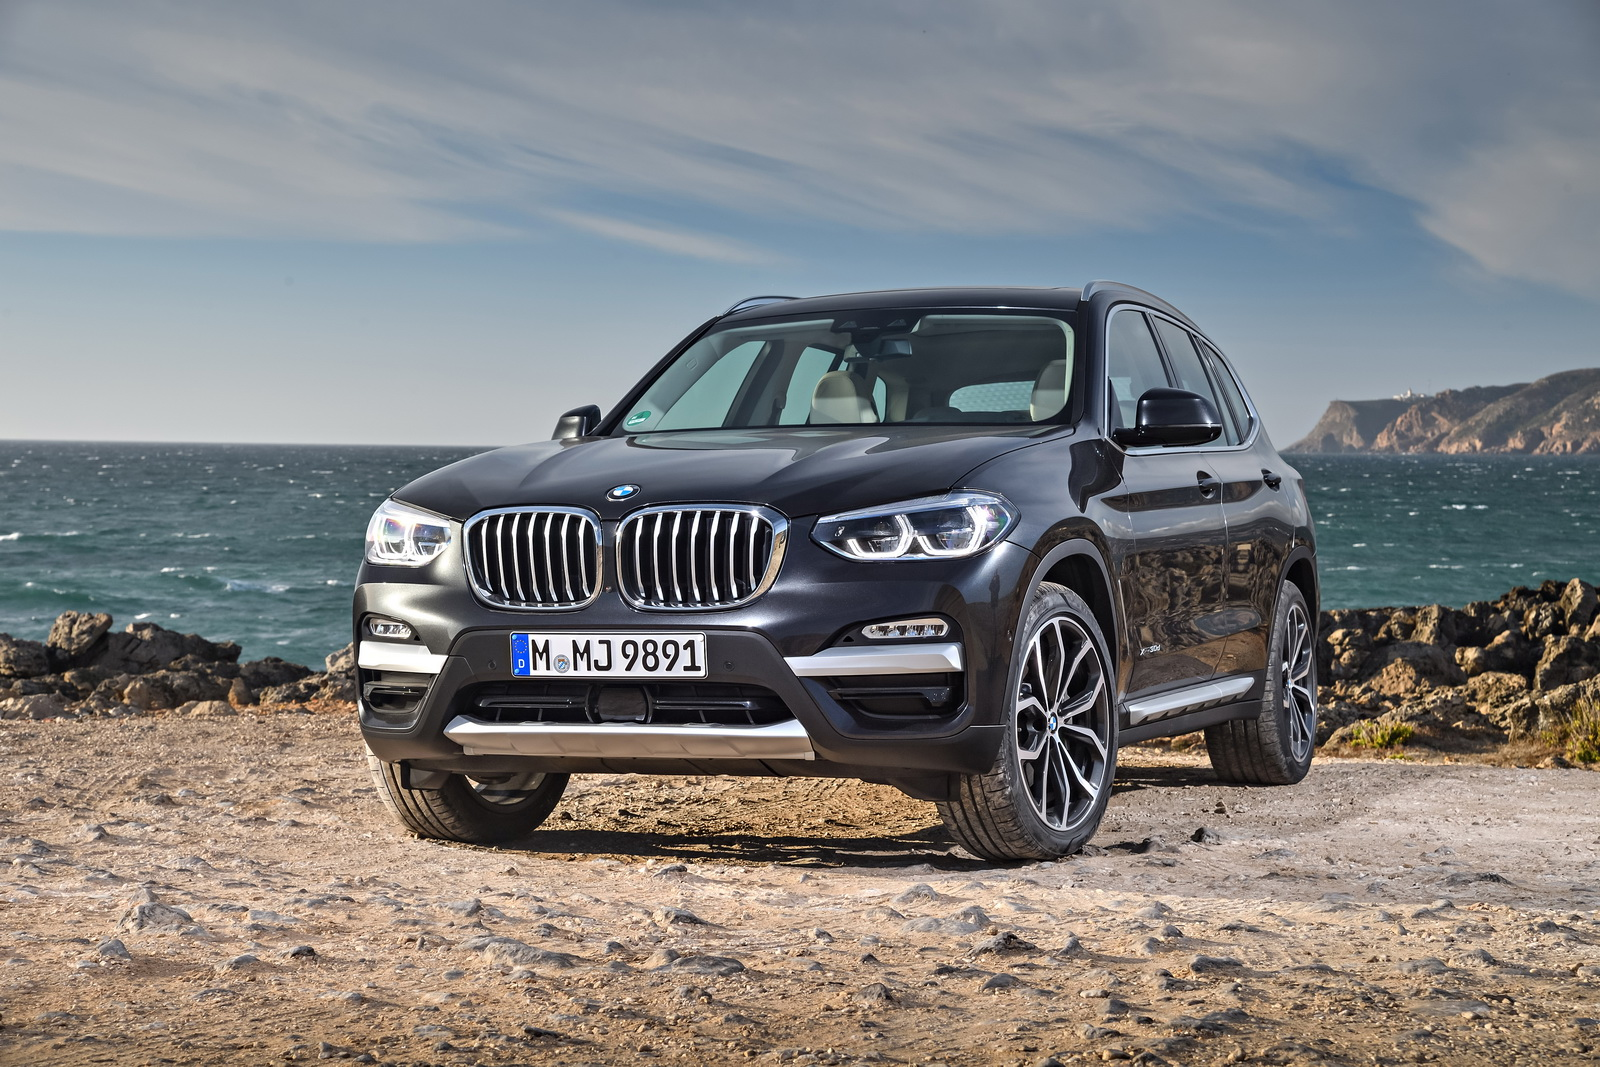 bmw x3 will reportedly gain a diesel engine in the u s carscoops. Black Bedroom Furniture Sets. Home Design Ideas